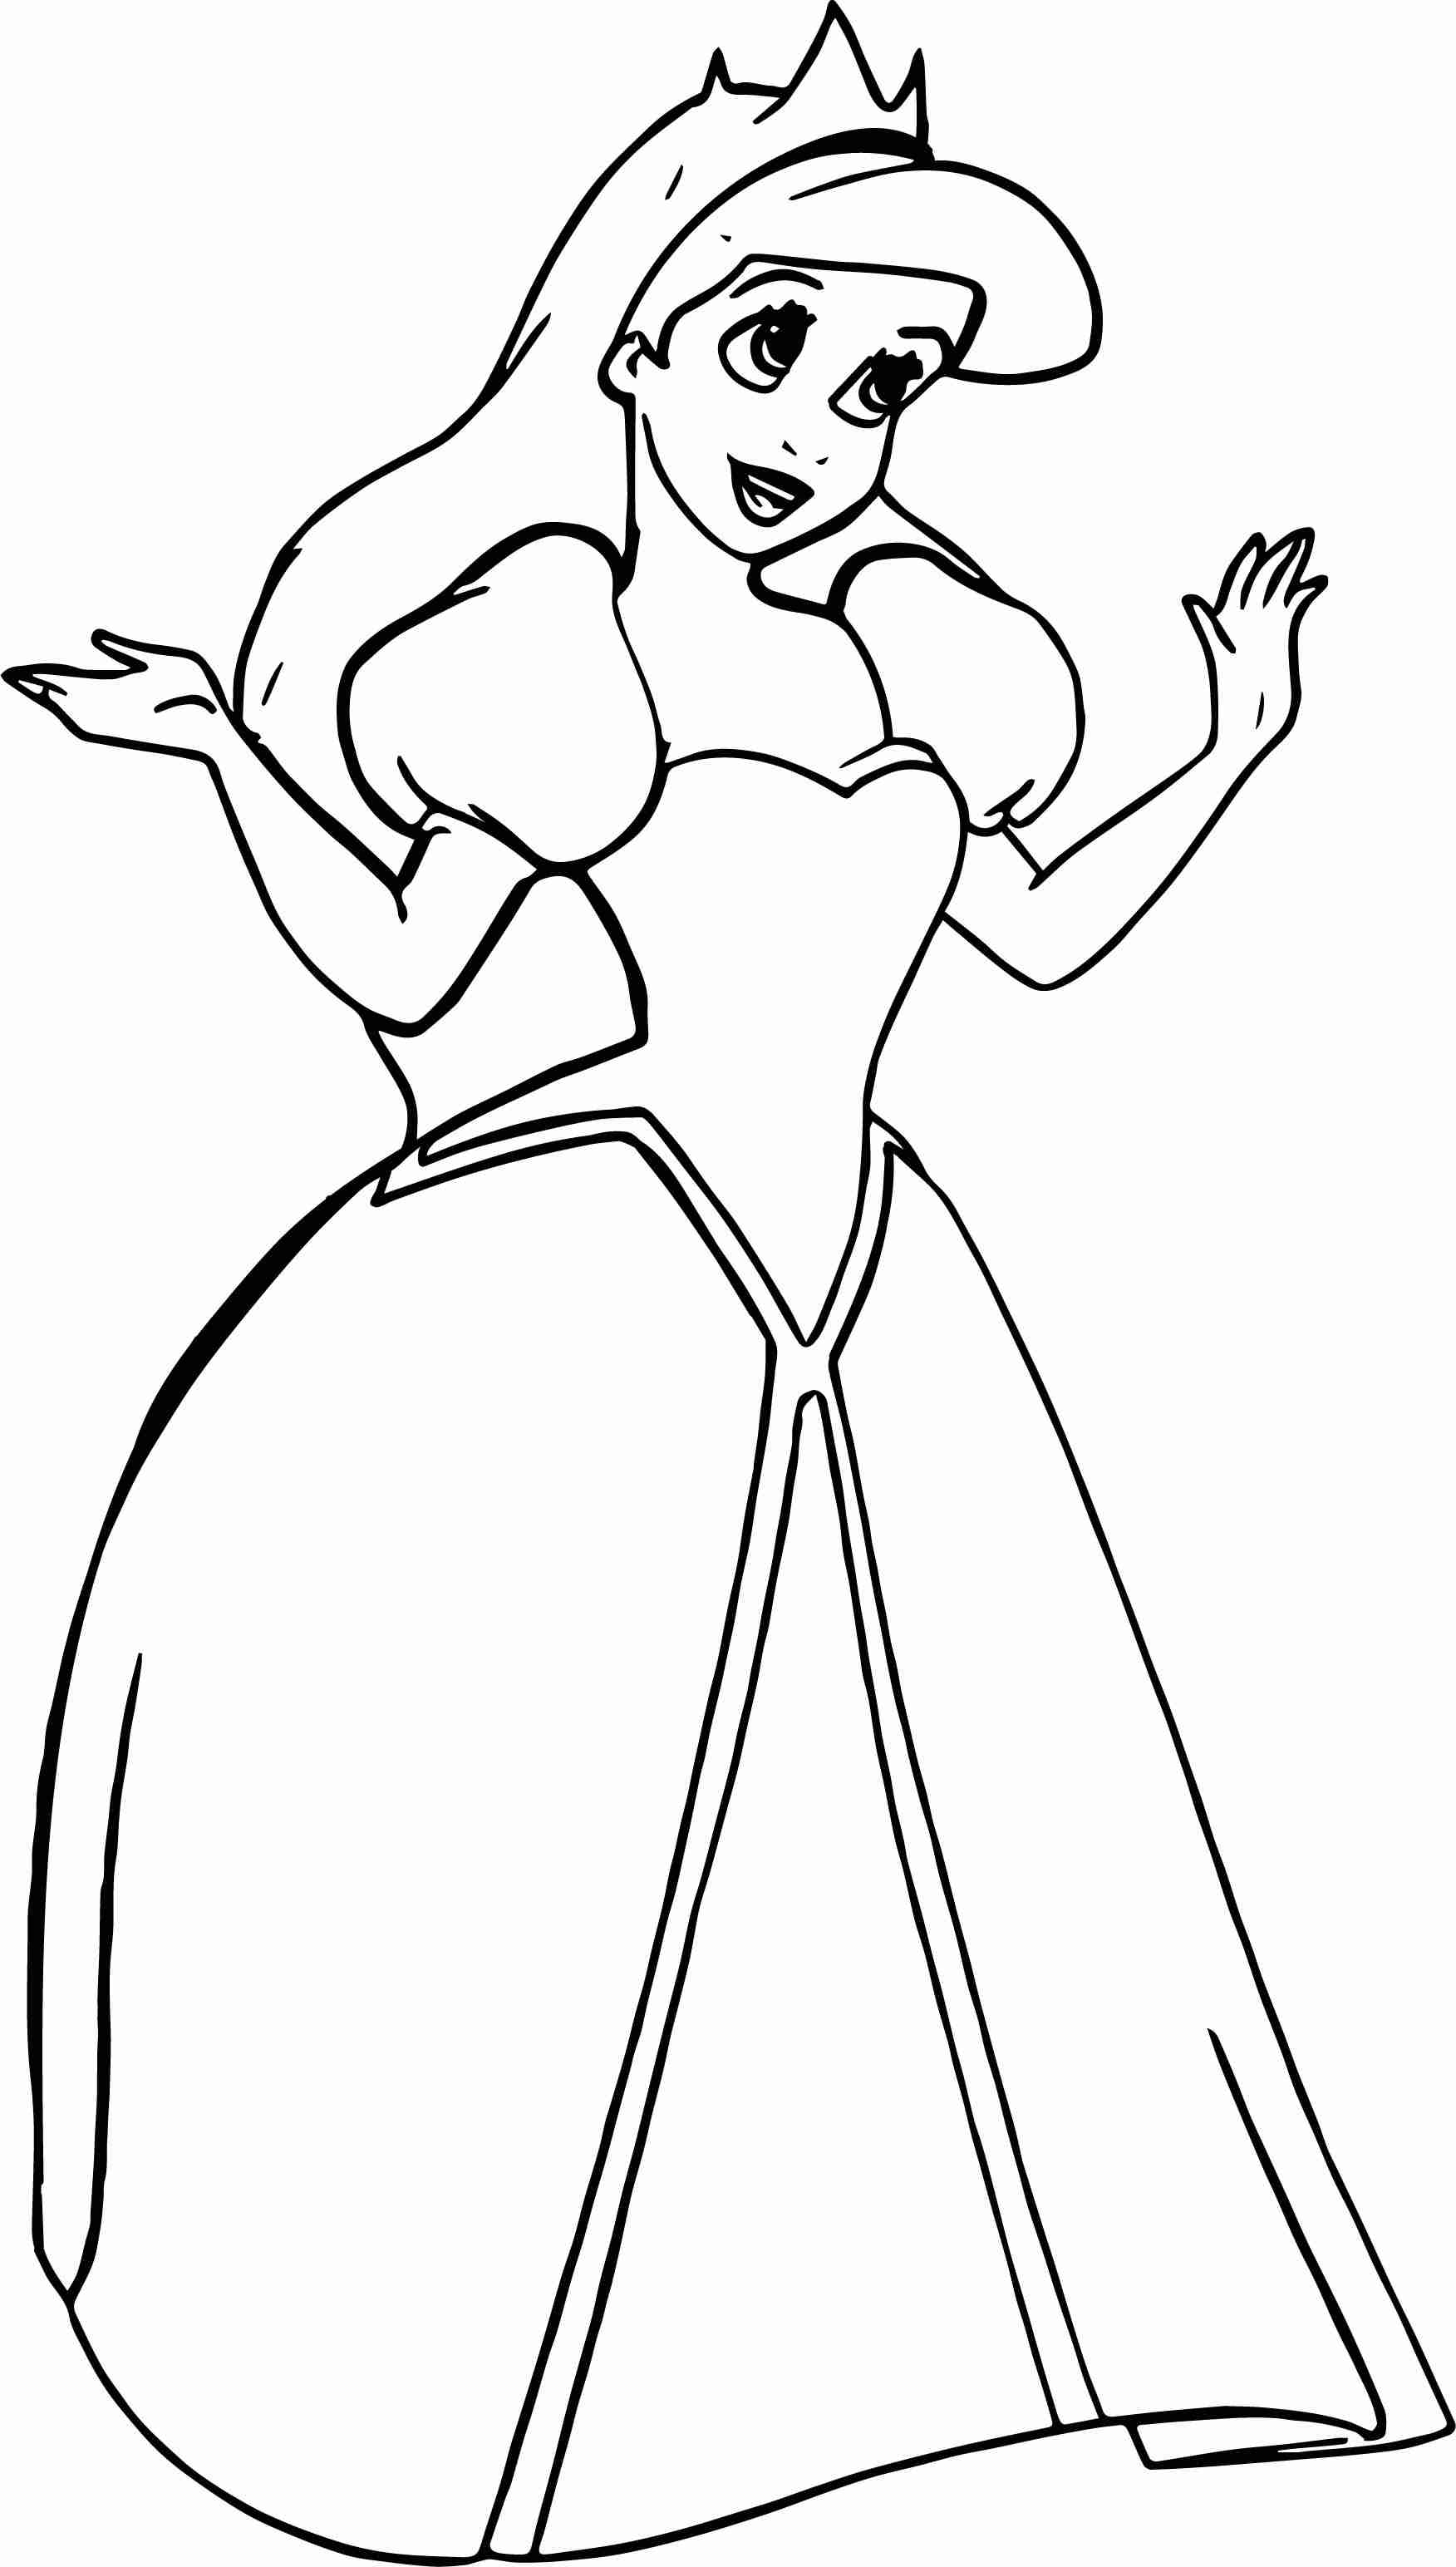 1752x3088 Little Mermaid Coloring Pages Ariel Friends Coloringstar Within